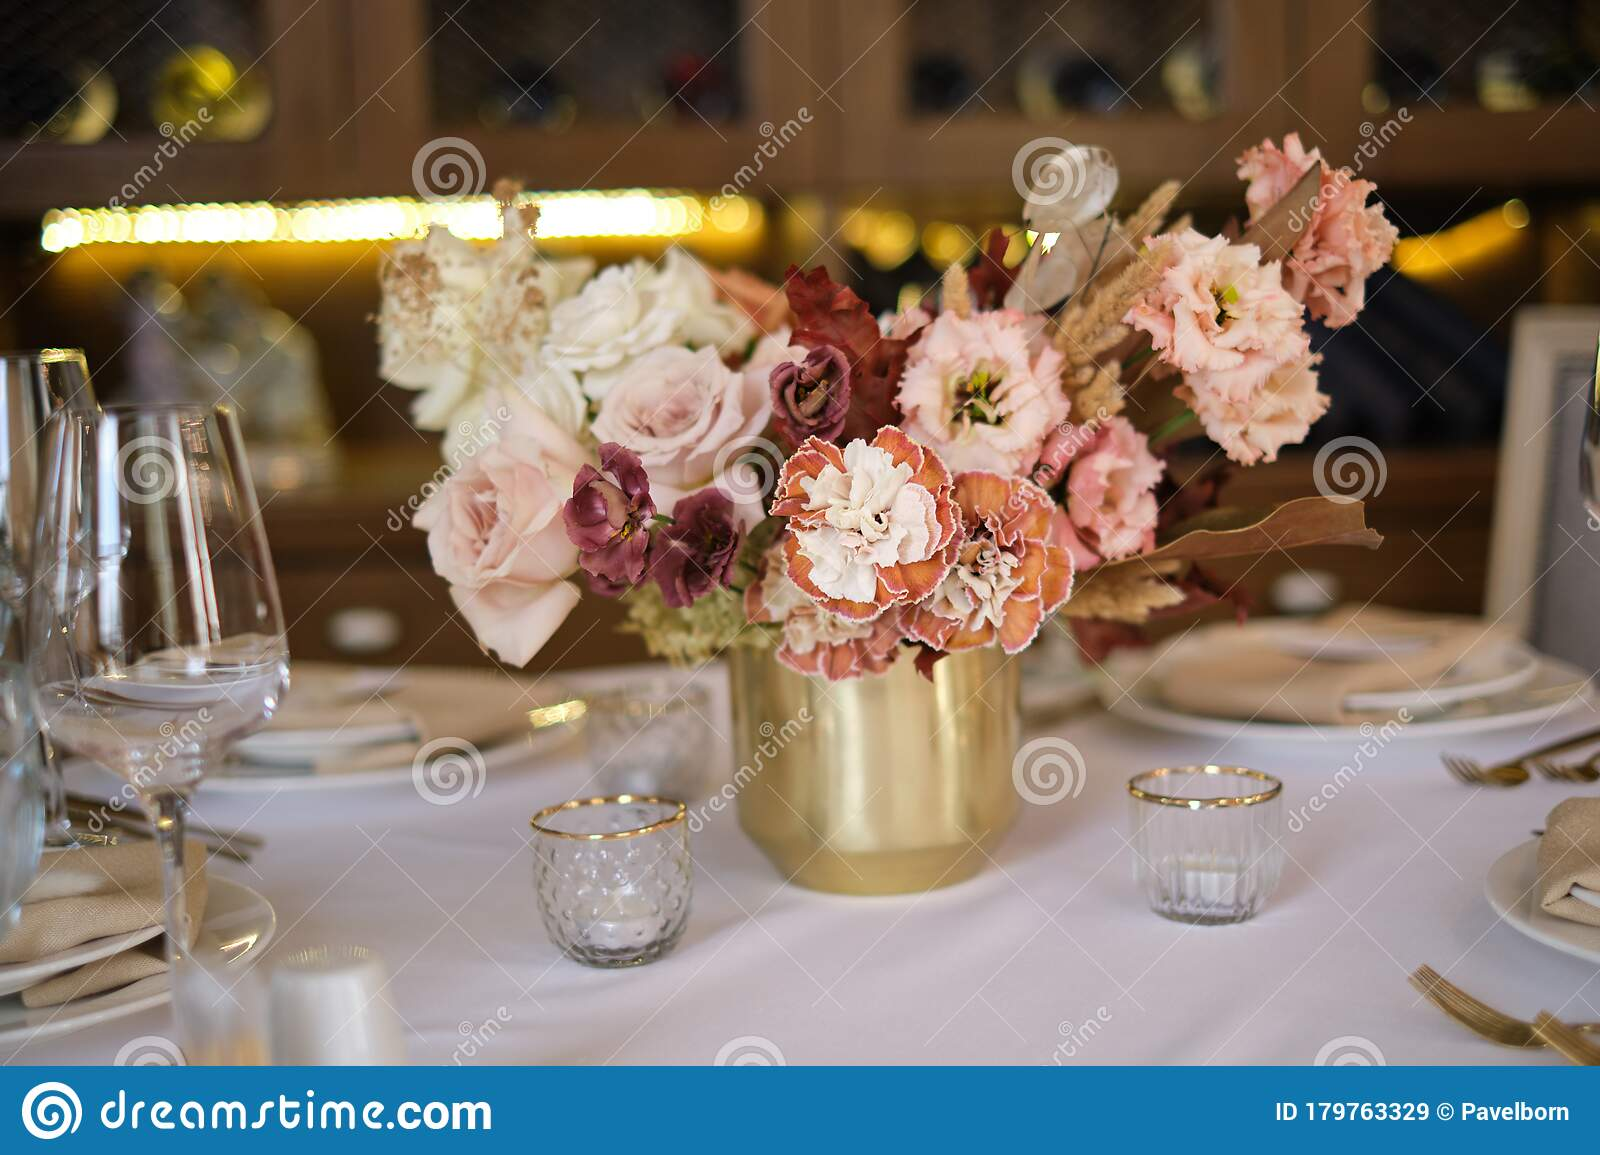 Luxury Cozy Autumn Wedding Table Decoration In The Restaurant Fresh And Dried Flowers Roses Carnations Beautiful Table Setting Stock Image Image Of Beautiful Plate 179763329